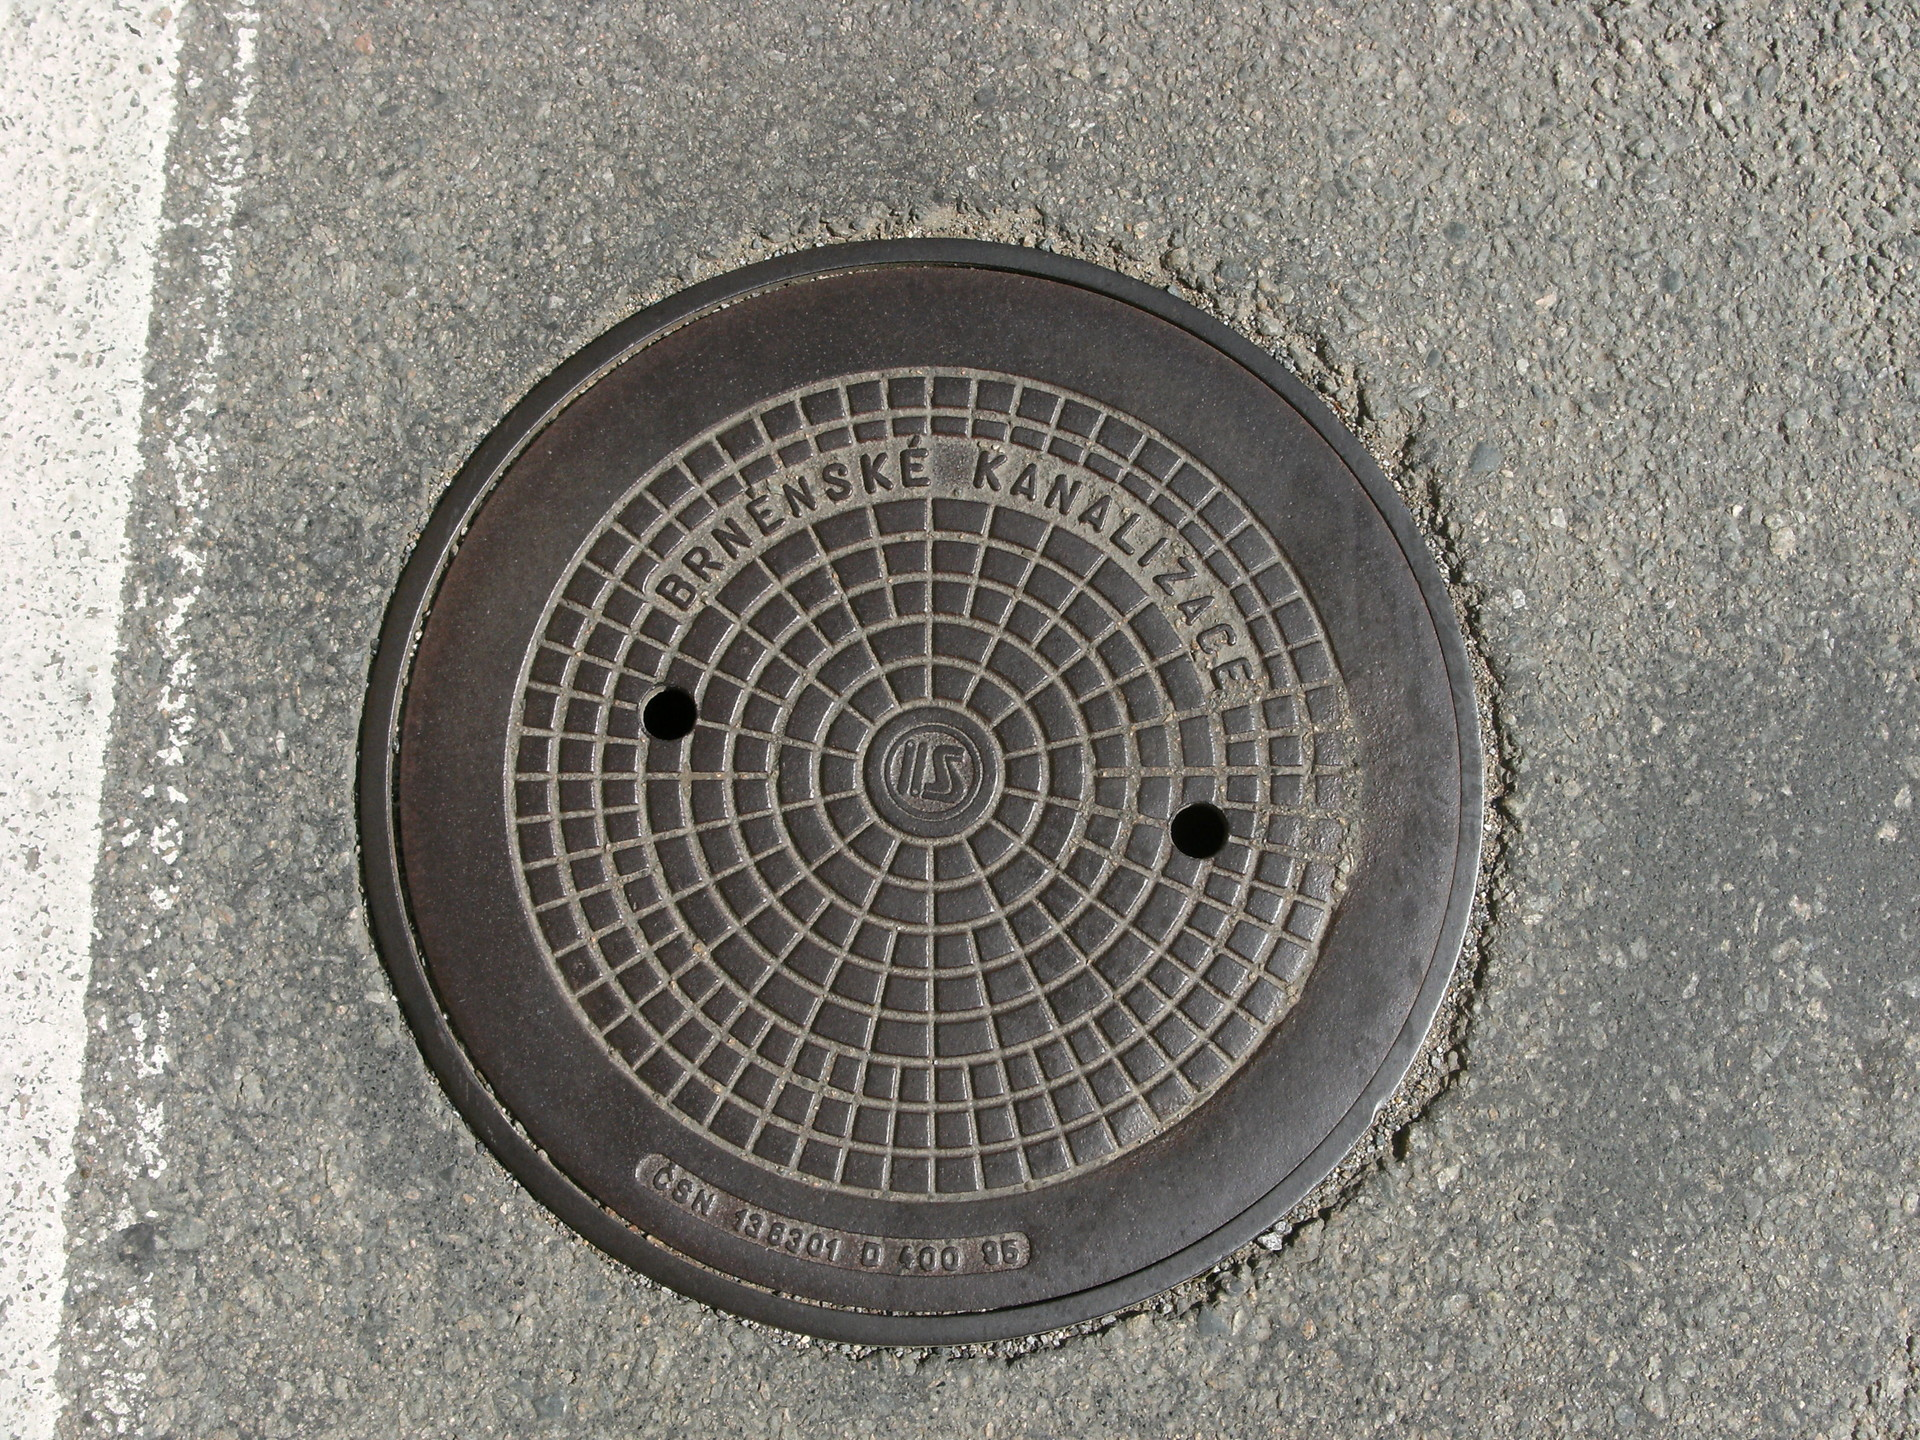 Danilo paulo manhole cover in krtiny